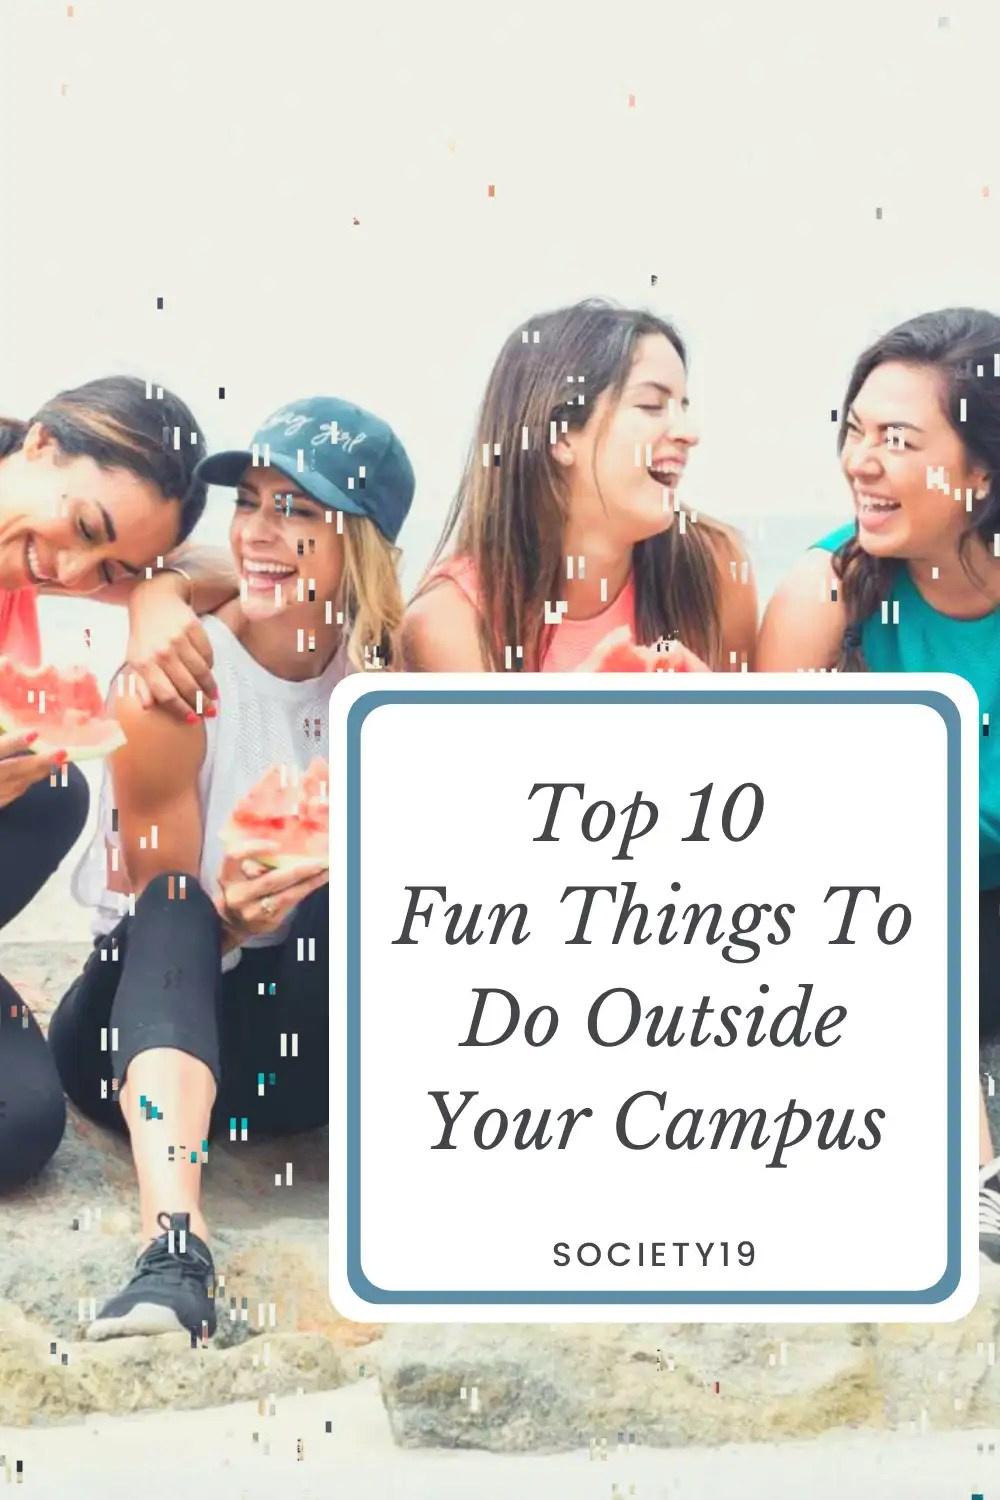 Top 10 Fun Things To Do Outside Your Campus